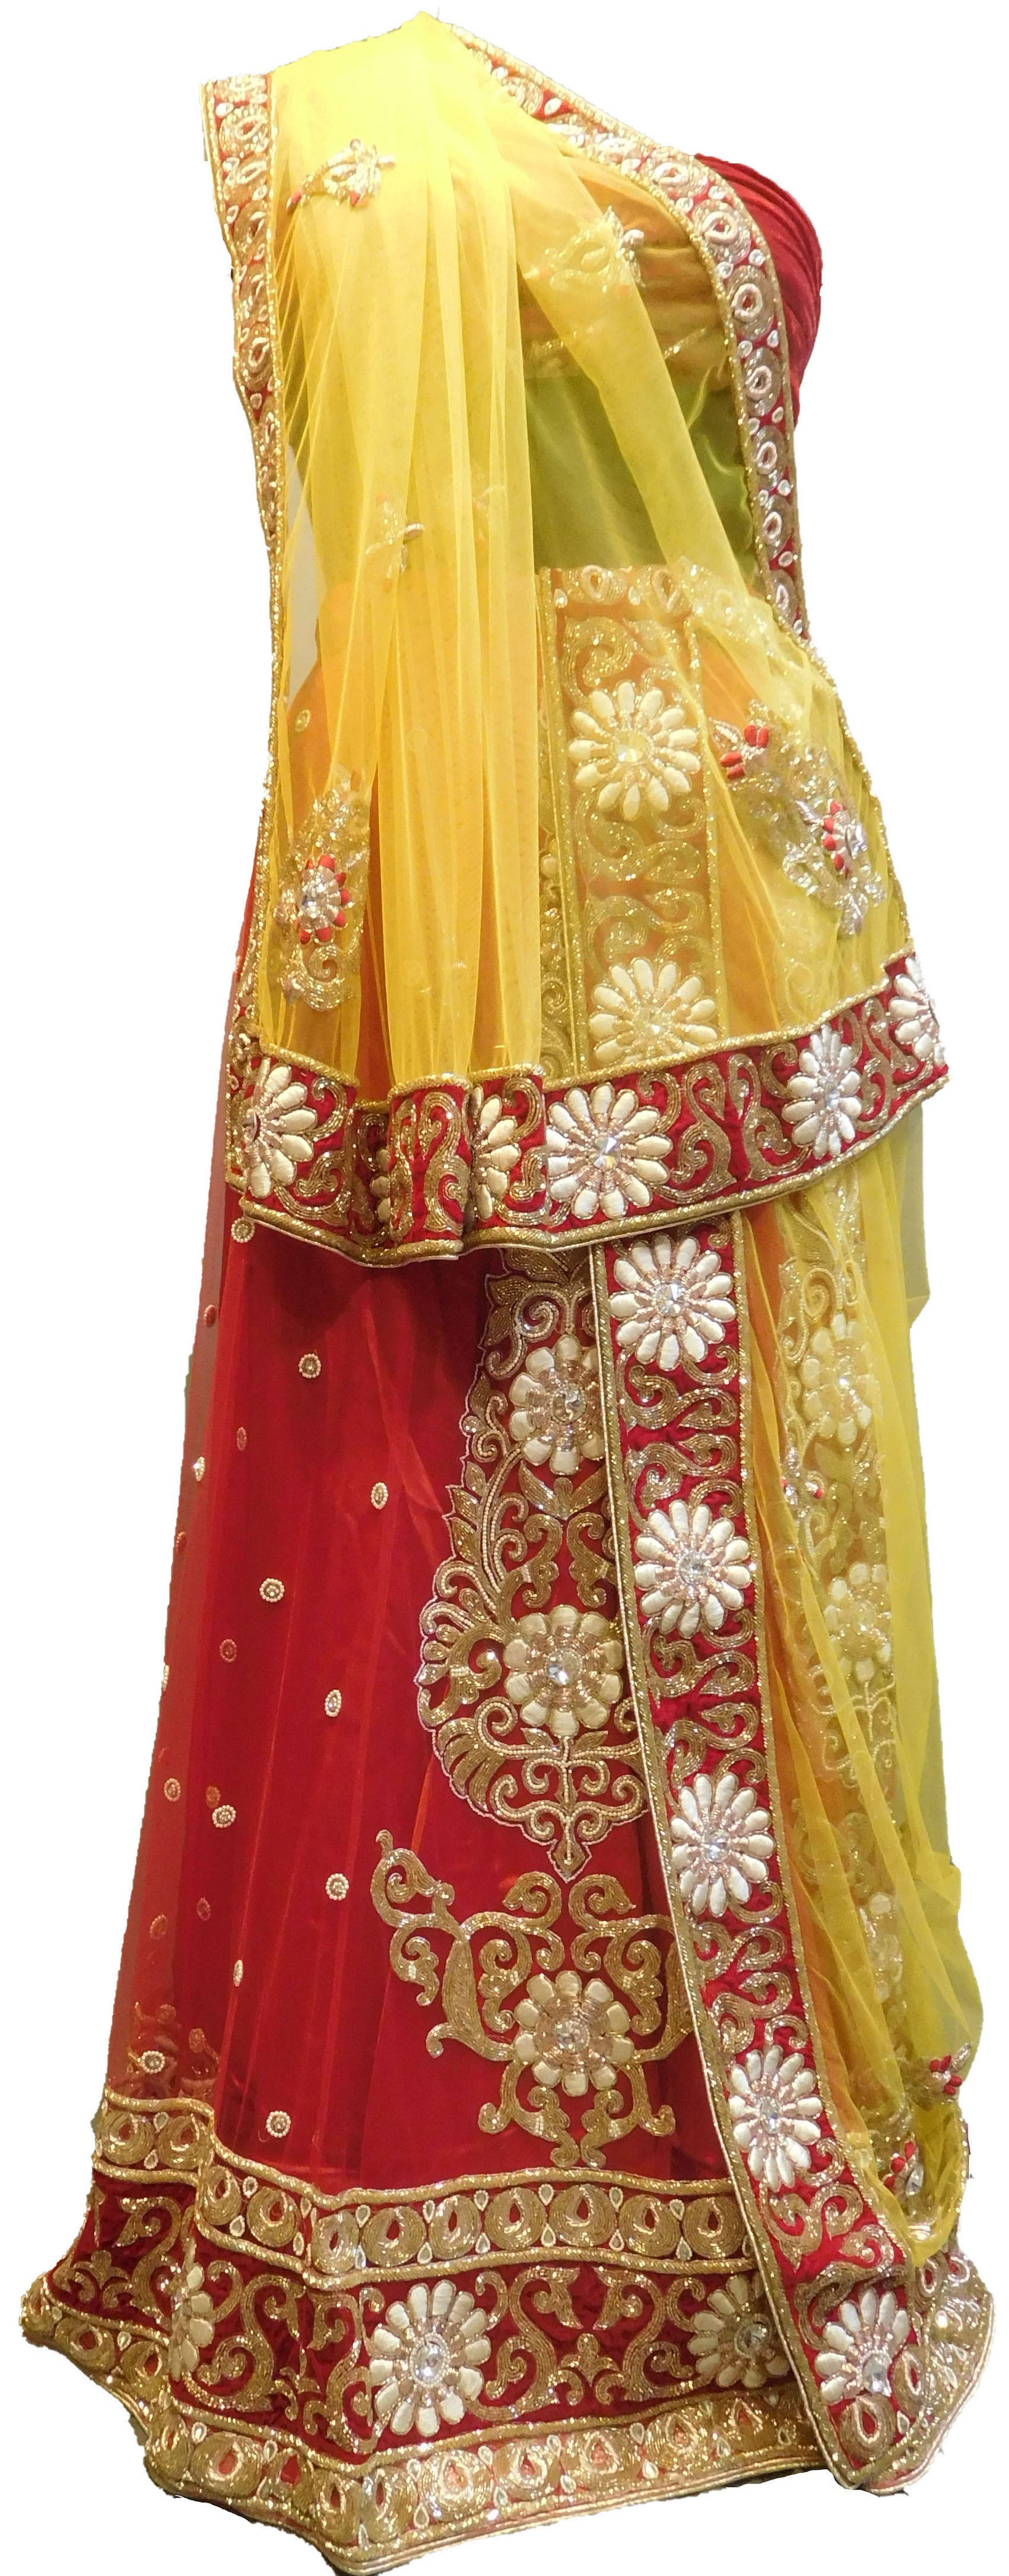 SMSAREE Yellow & Red Designer Wedding Partywear Net Stone Beads Cutdana Thread Bullion & Pearl Hand Embroidery Work Bridal Lahenga Choli Dupatta SemiStitched LAE625